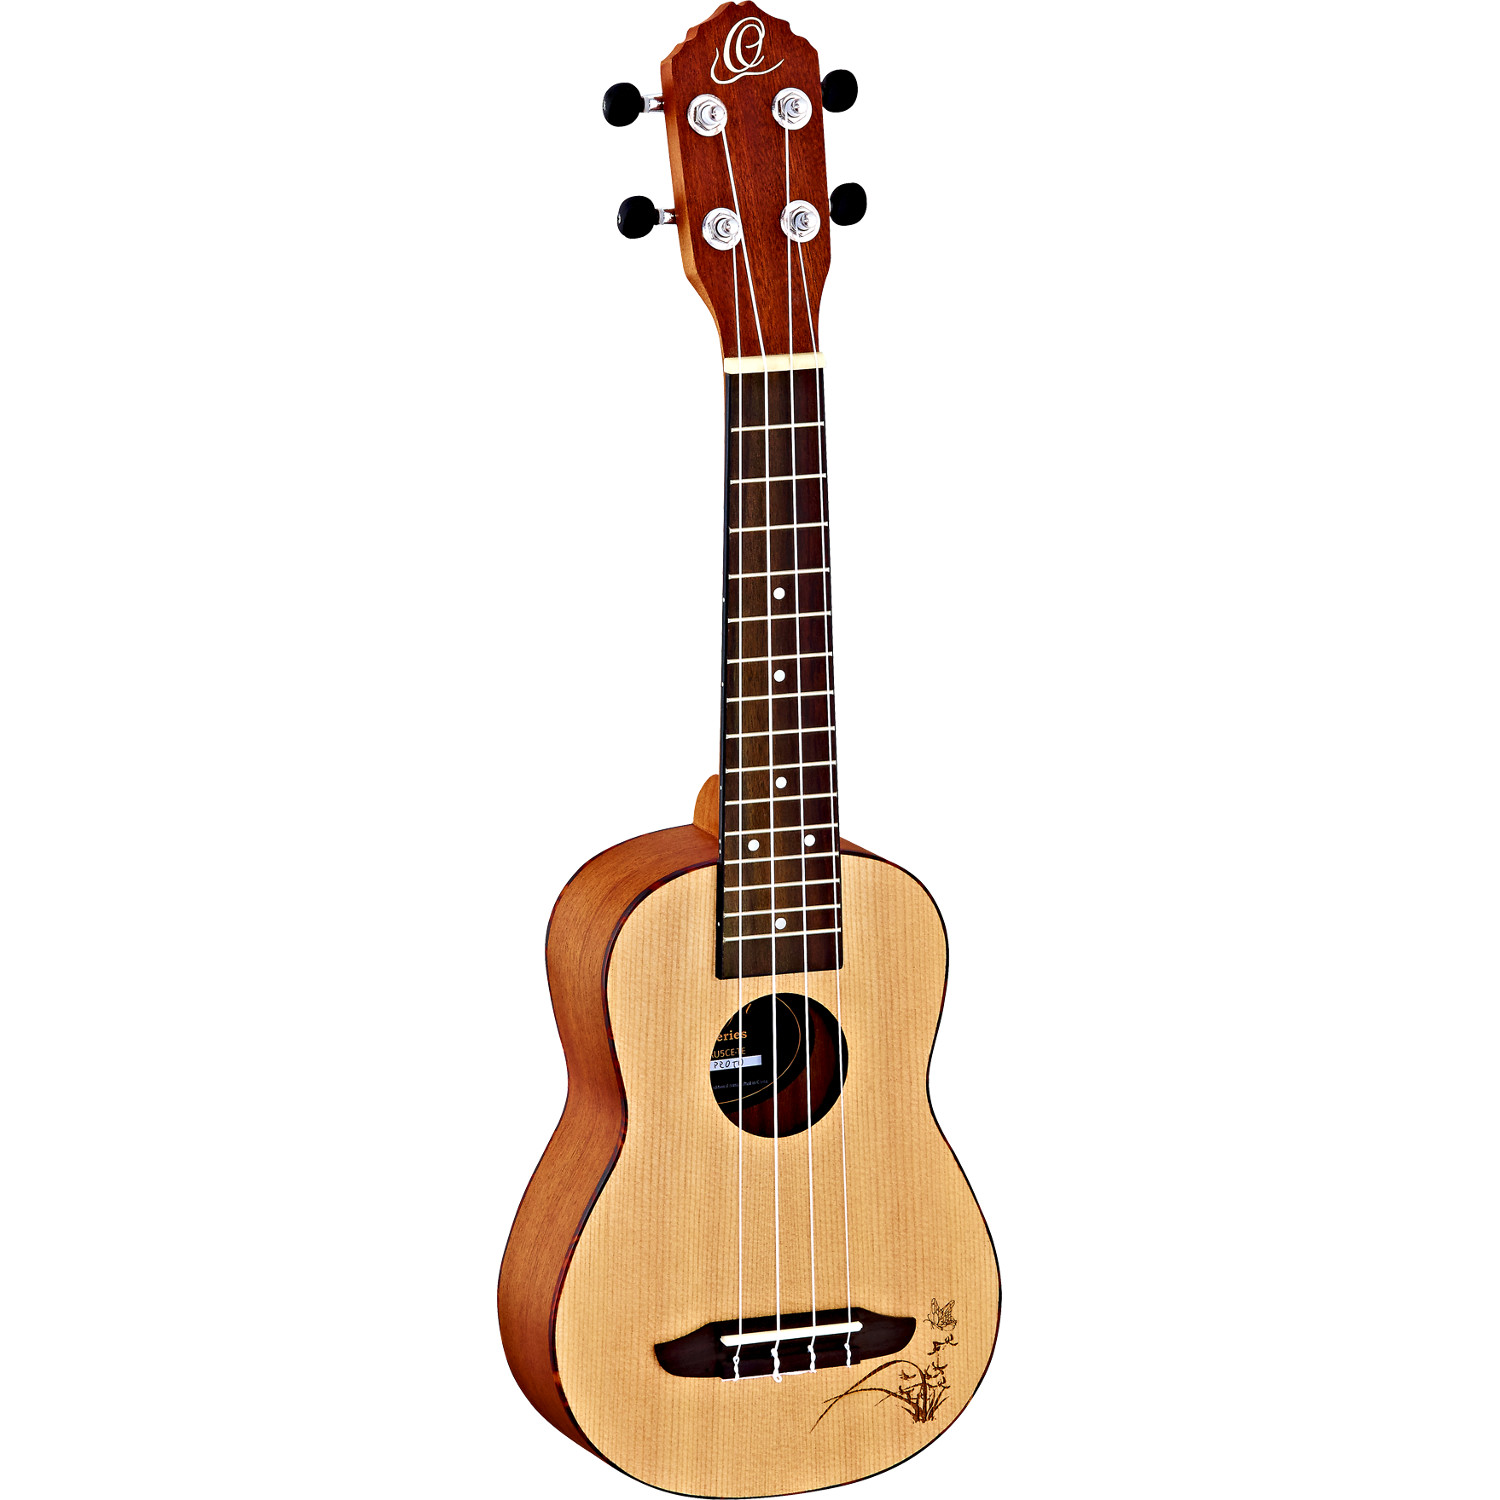 Ortega Bonfire Series RU5 SO soprano ukulele, natural